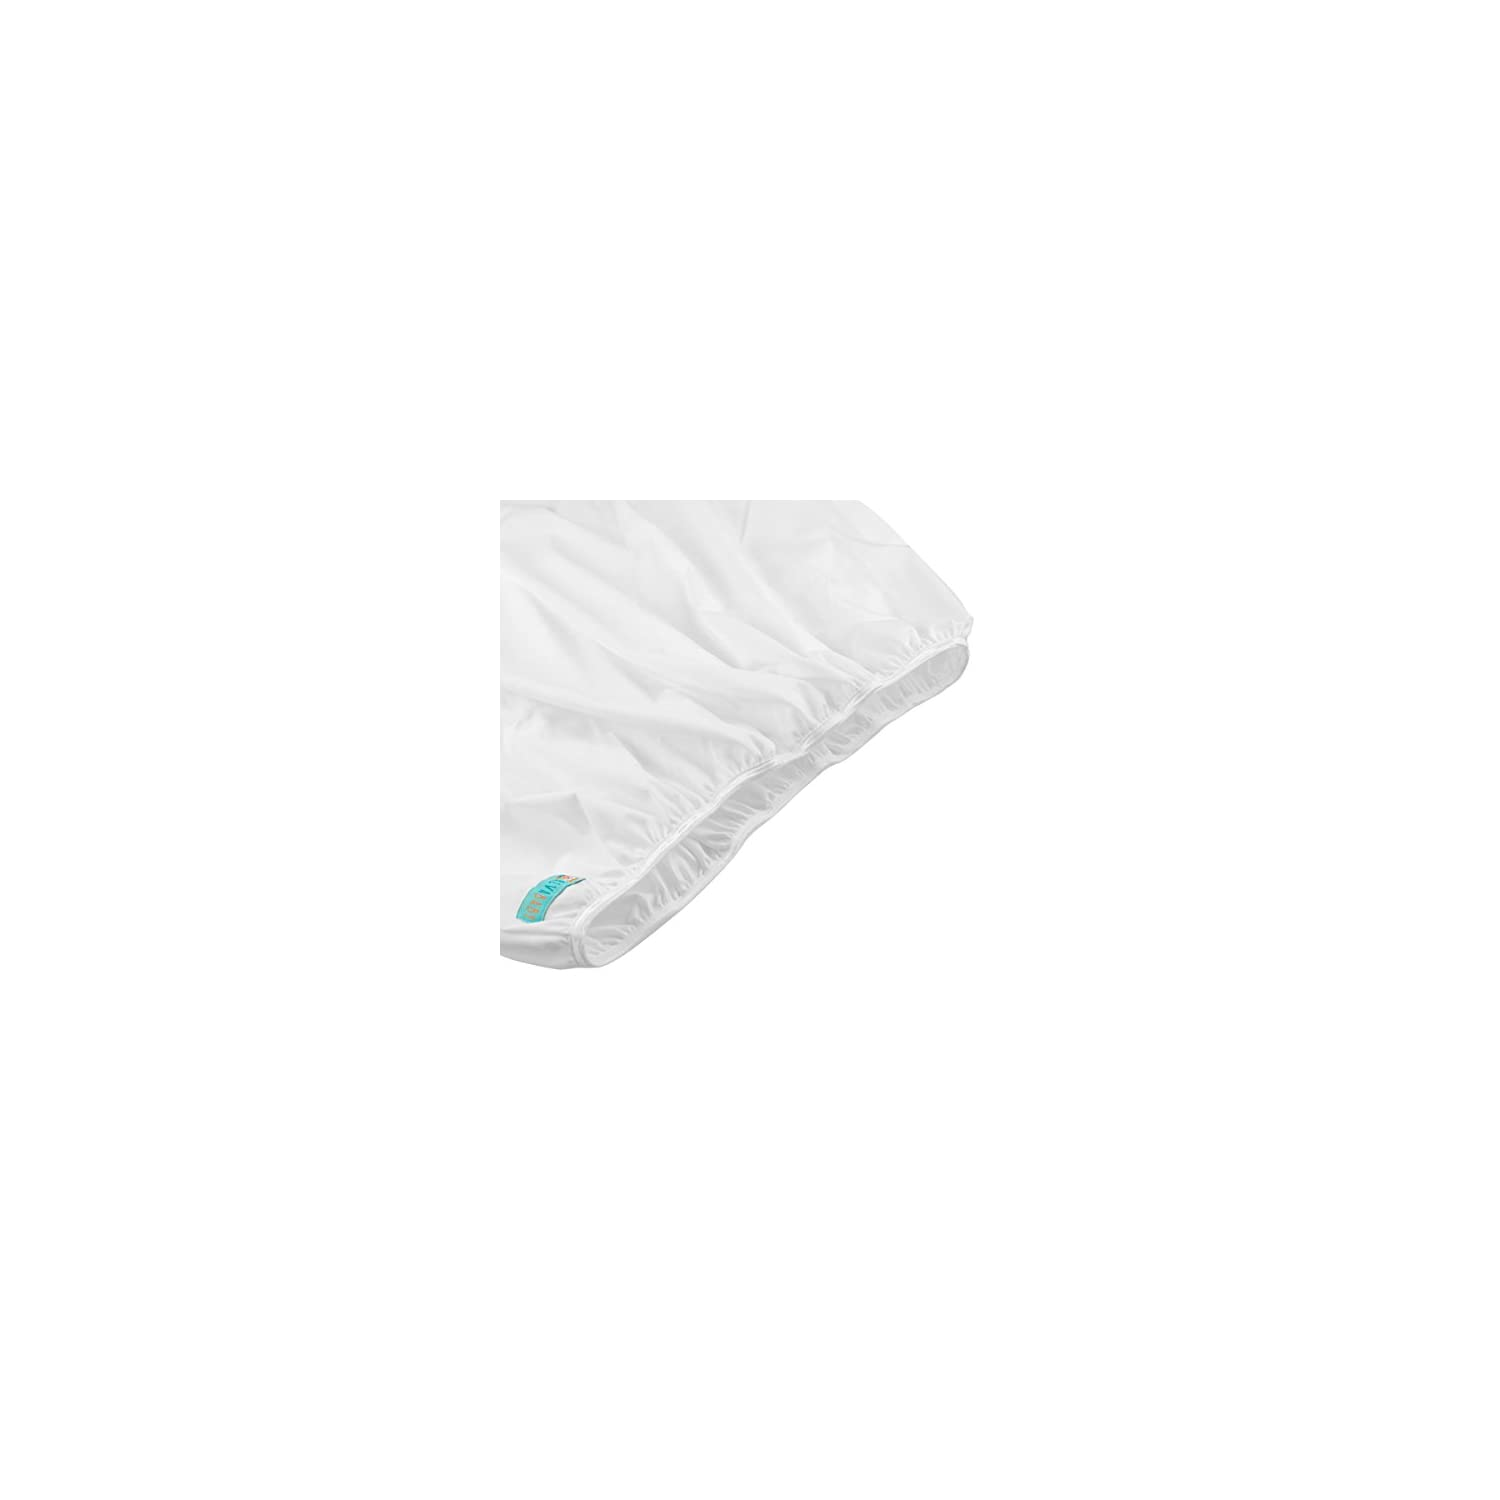 ALVABABY 2 Pack Reusable Diaper Pail Liner for Cloth Diaper,Laundry,Kitchen Garbage Cans PL-B0918